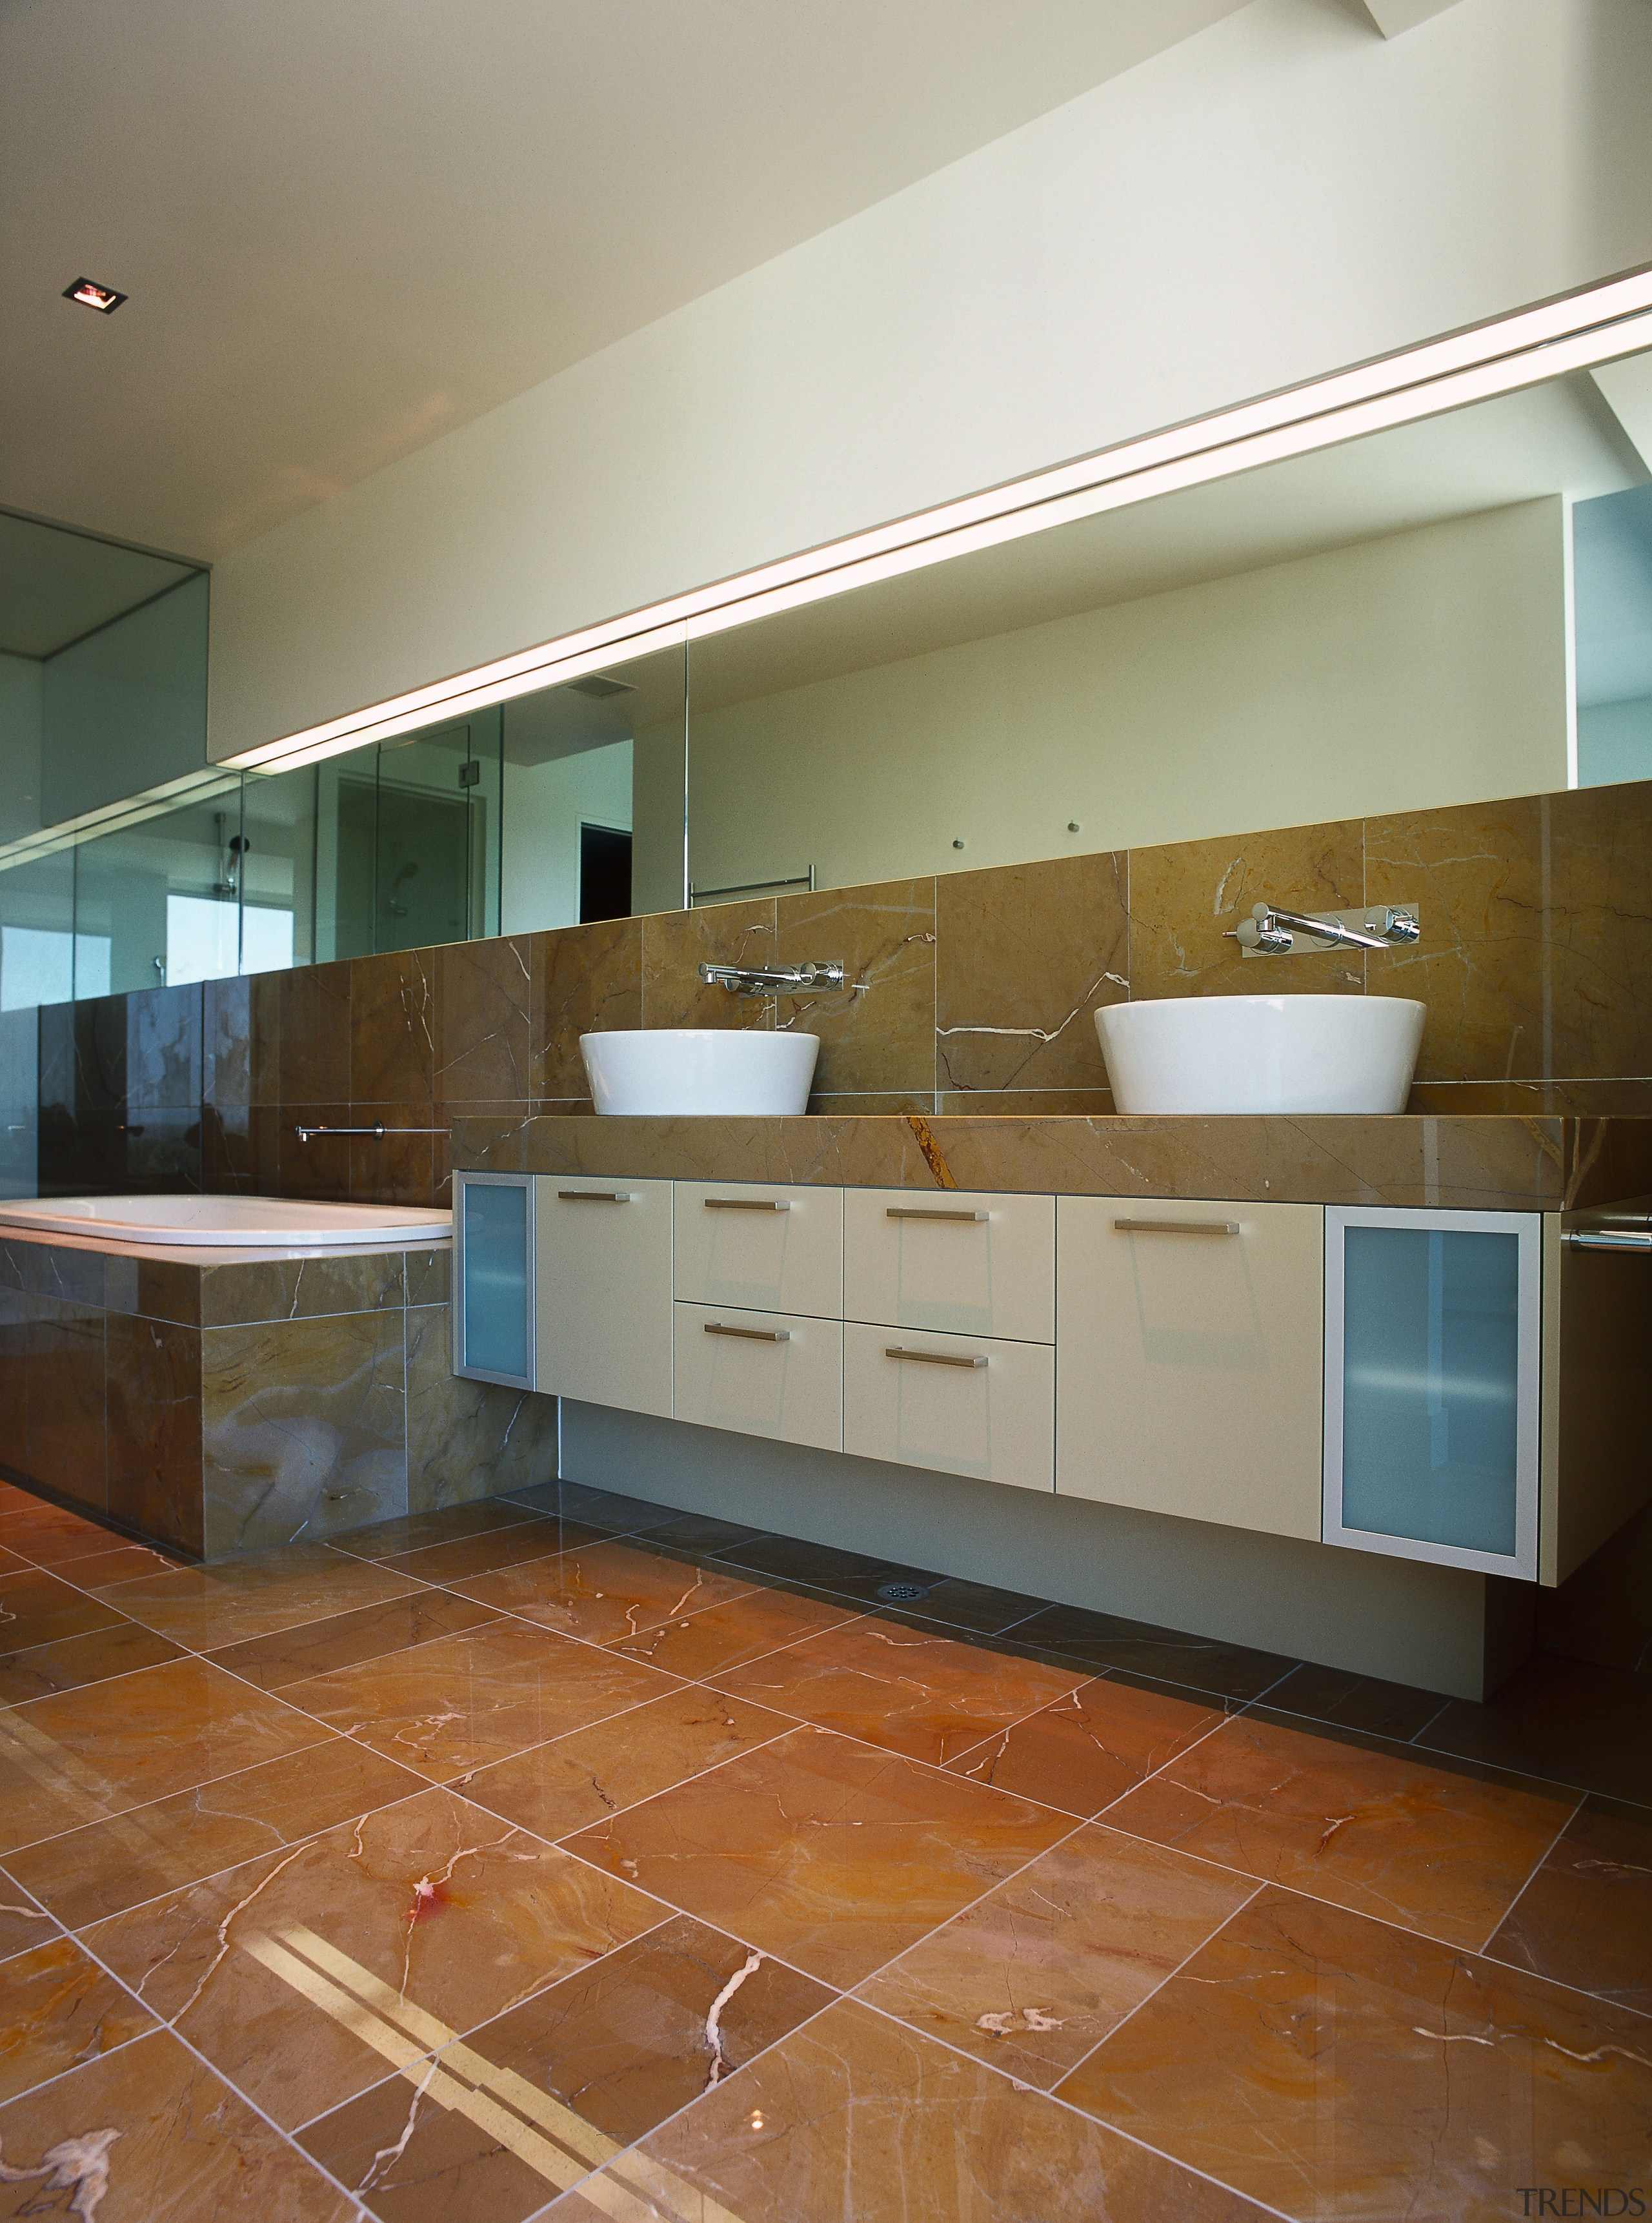 bathrooms features marble tiling on the floor and apartment, architecture, bathroom, cabinetry, countertop, daylighting, floor, flooring, hardwood, home, house, interior design, kitchen, laminate flooring, property, real estate, room, sink, tile, wall, wood, wood flooring, brown, gray